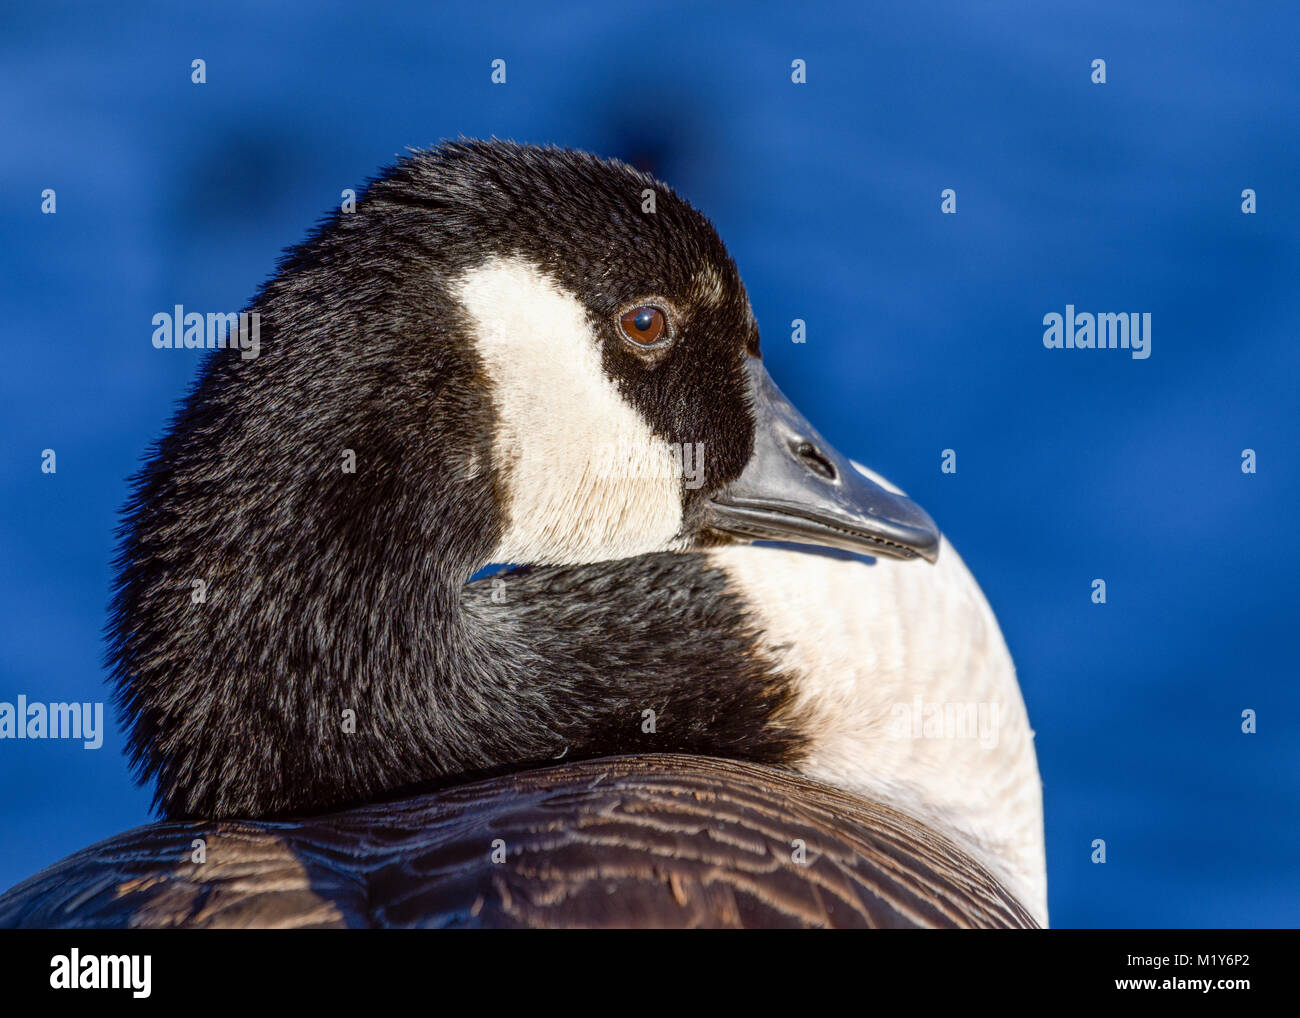 Canada Goose - Branta canadensis - close-up showing details of face, eyes, bill . High quality image with blue water - Stock Image